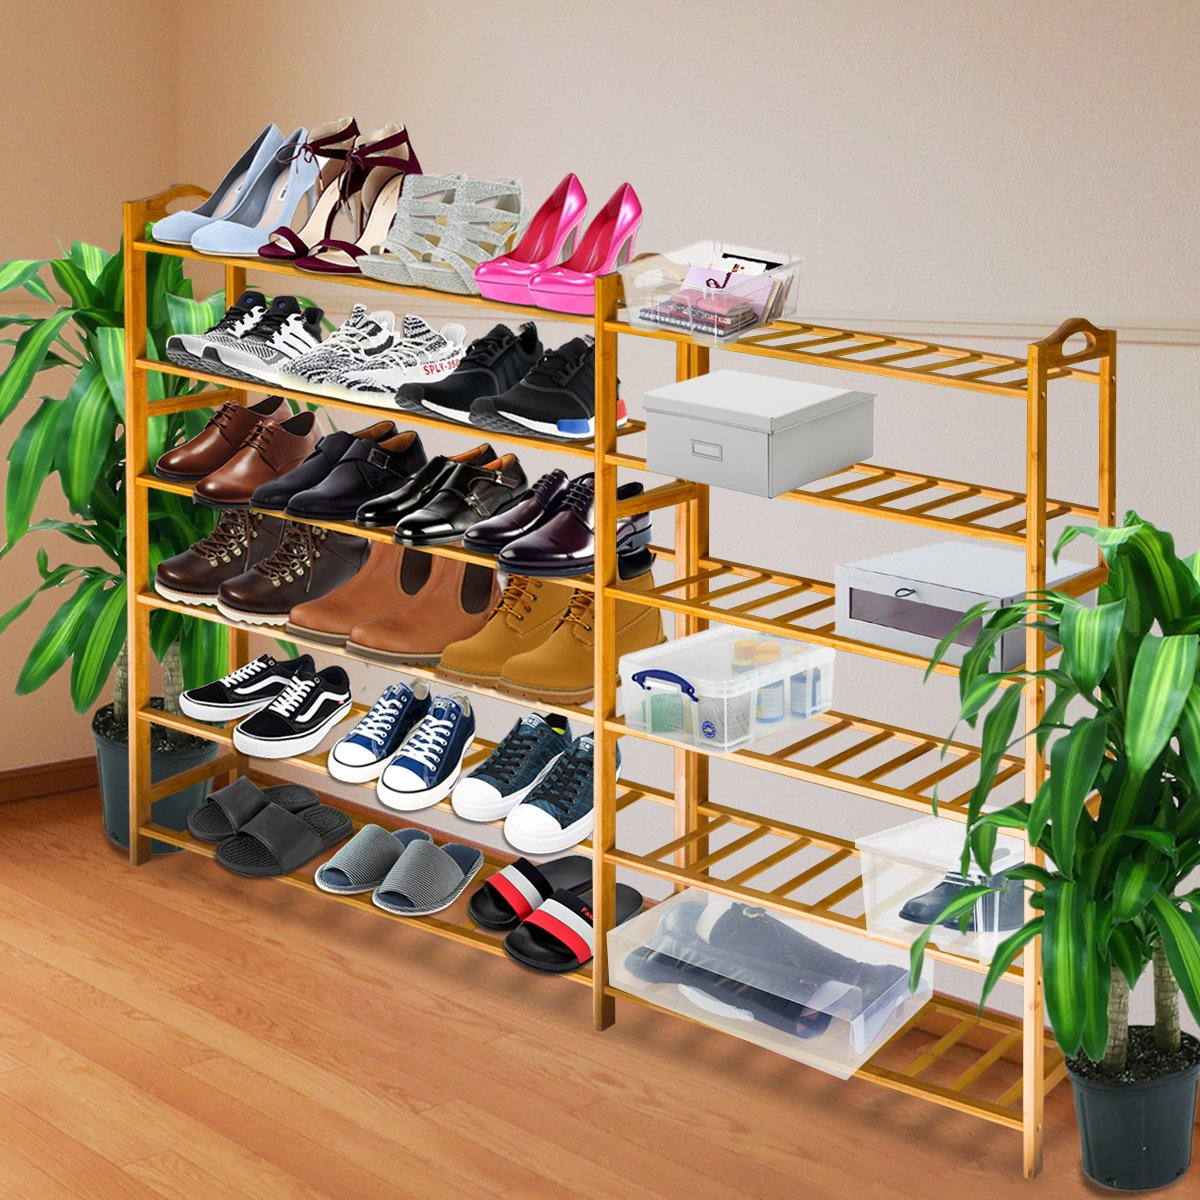 ANKO Bamboo Shoe Rack, 100% Natural Bamboo Thickened 6-Tier Mesh Utility Entryway Shoe Shelf Storage Organizer Suitable for Entryway, Closet, Living Room, Bedroom. (1 PACK) by ANKO (Image #7)